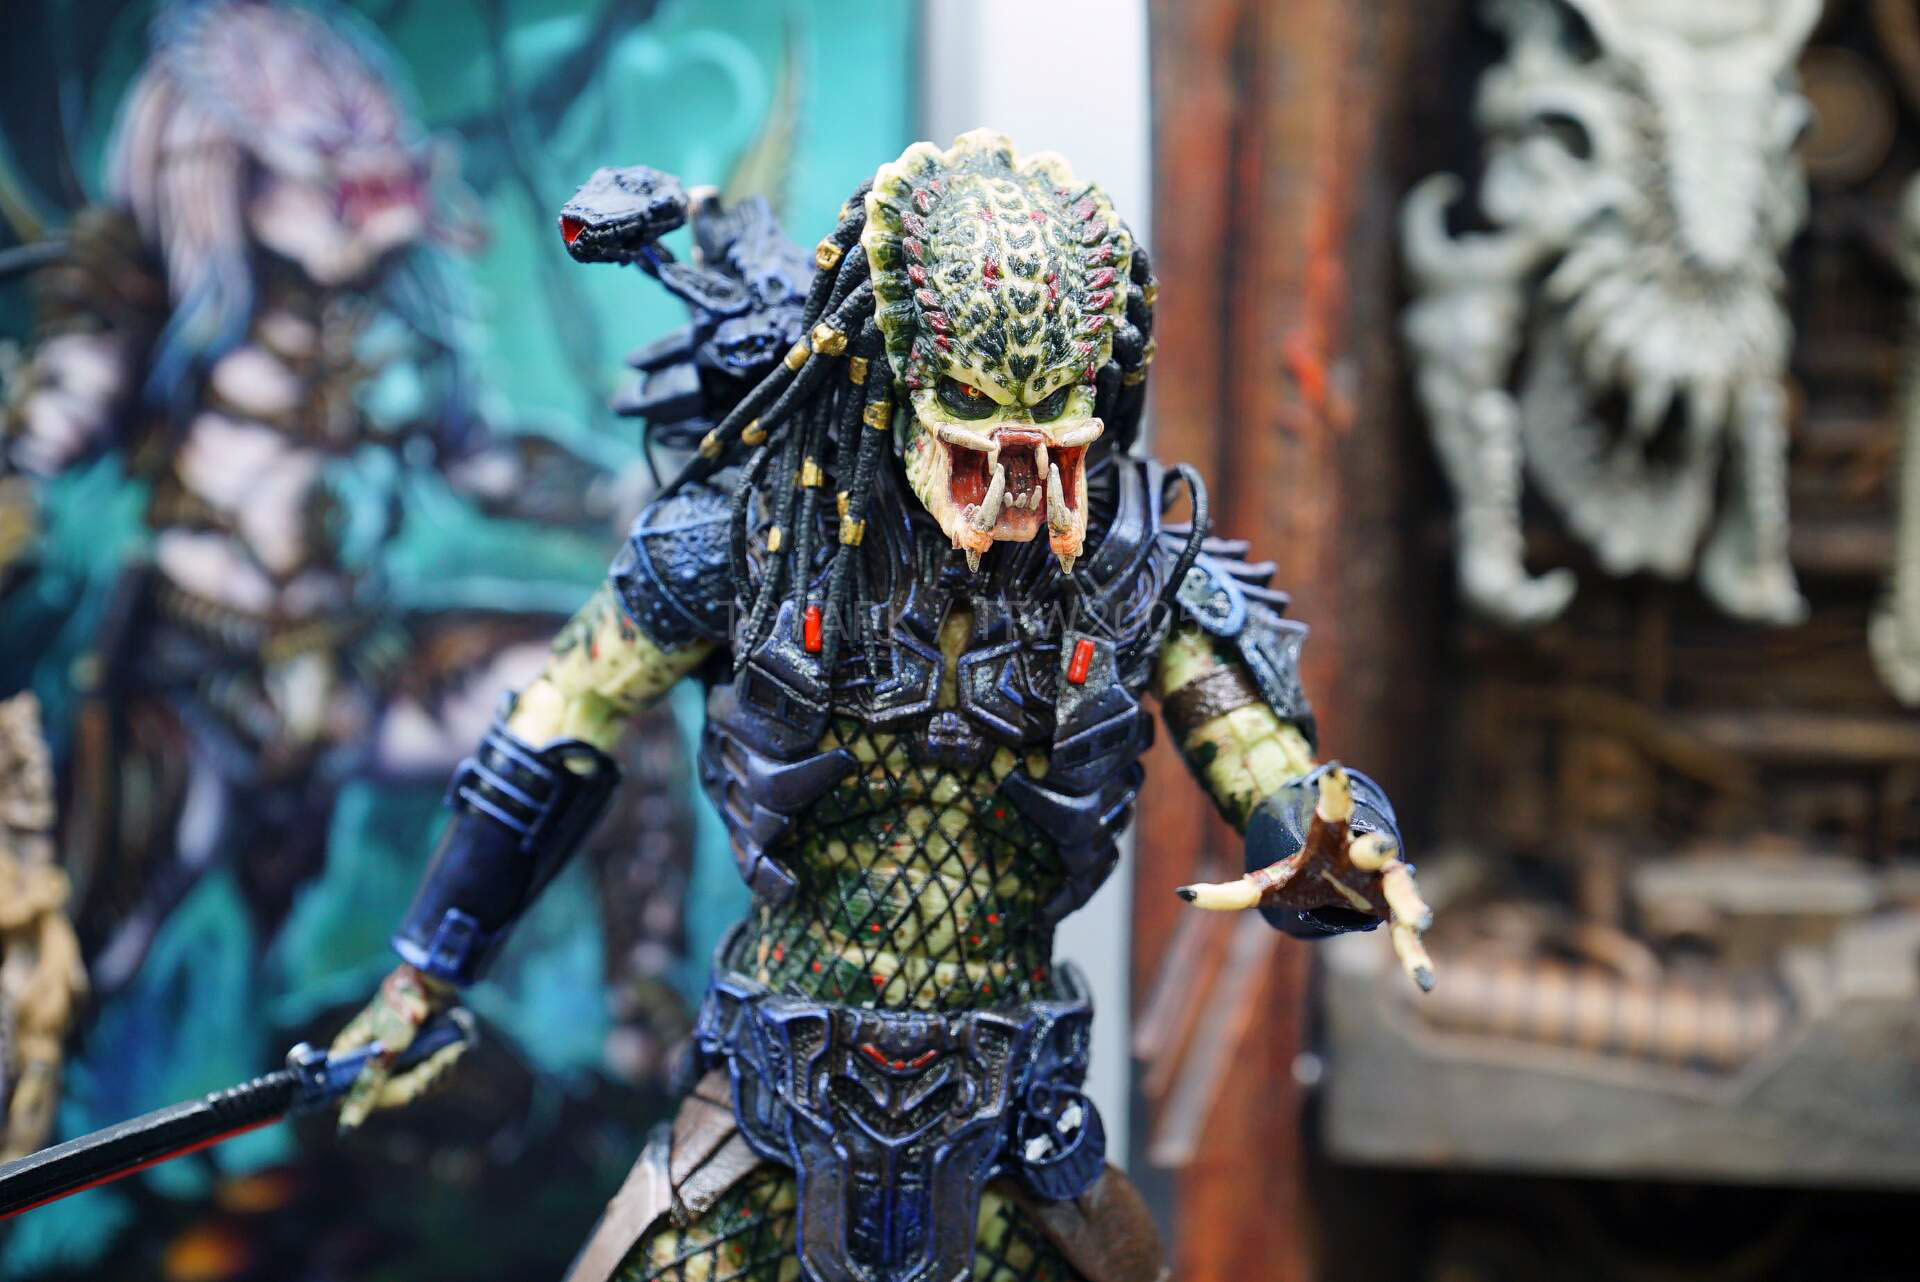 Toy-Fair-2020-NECA-Alien-and-Predator-045.jpg